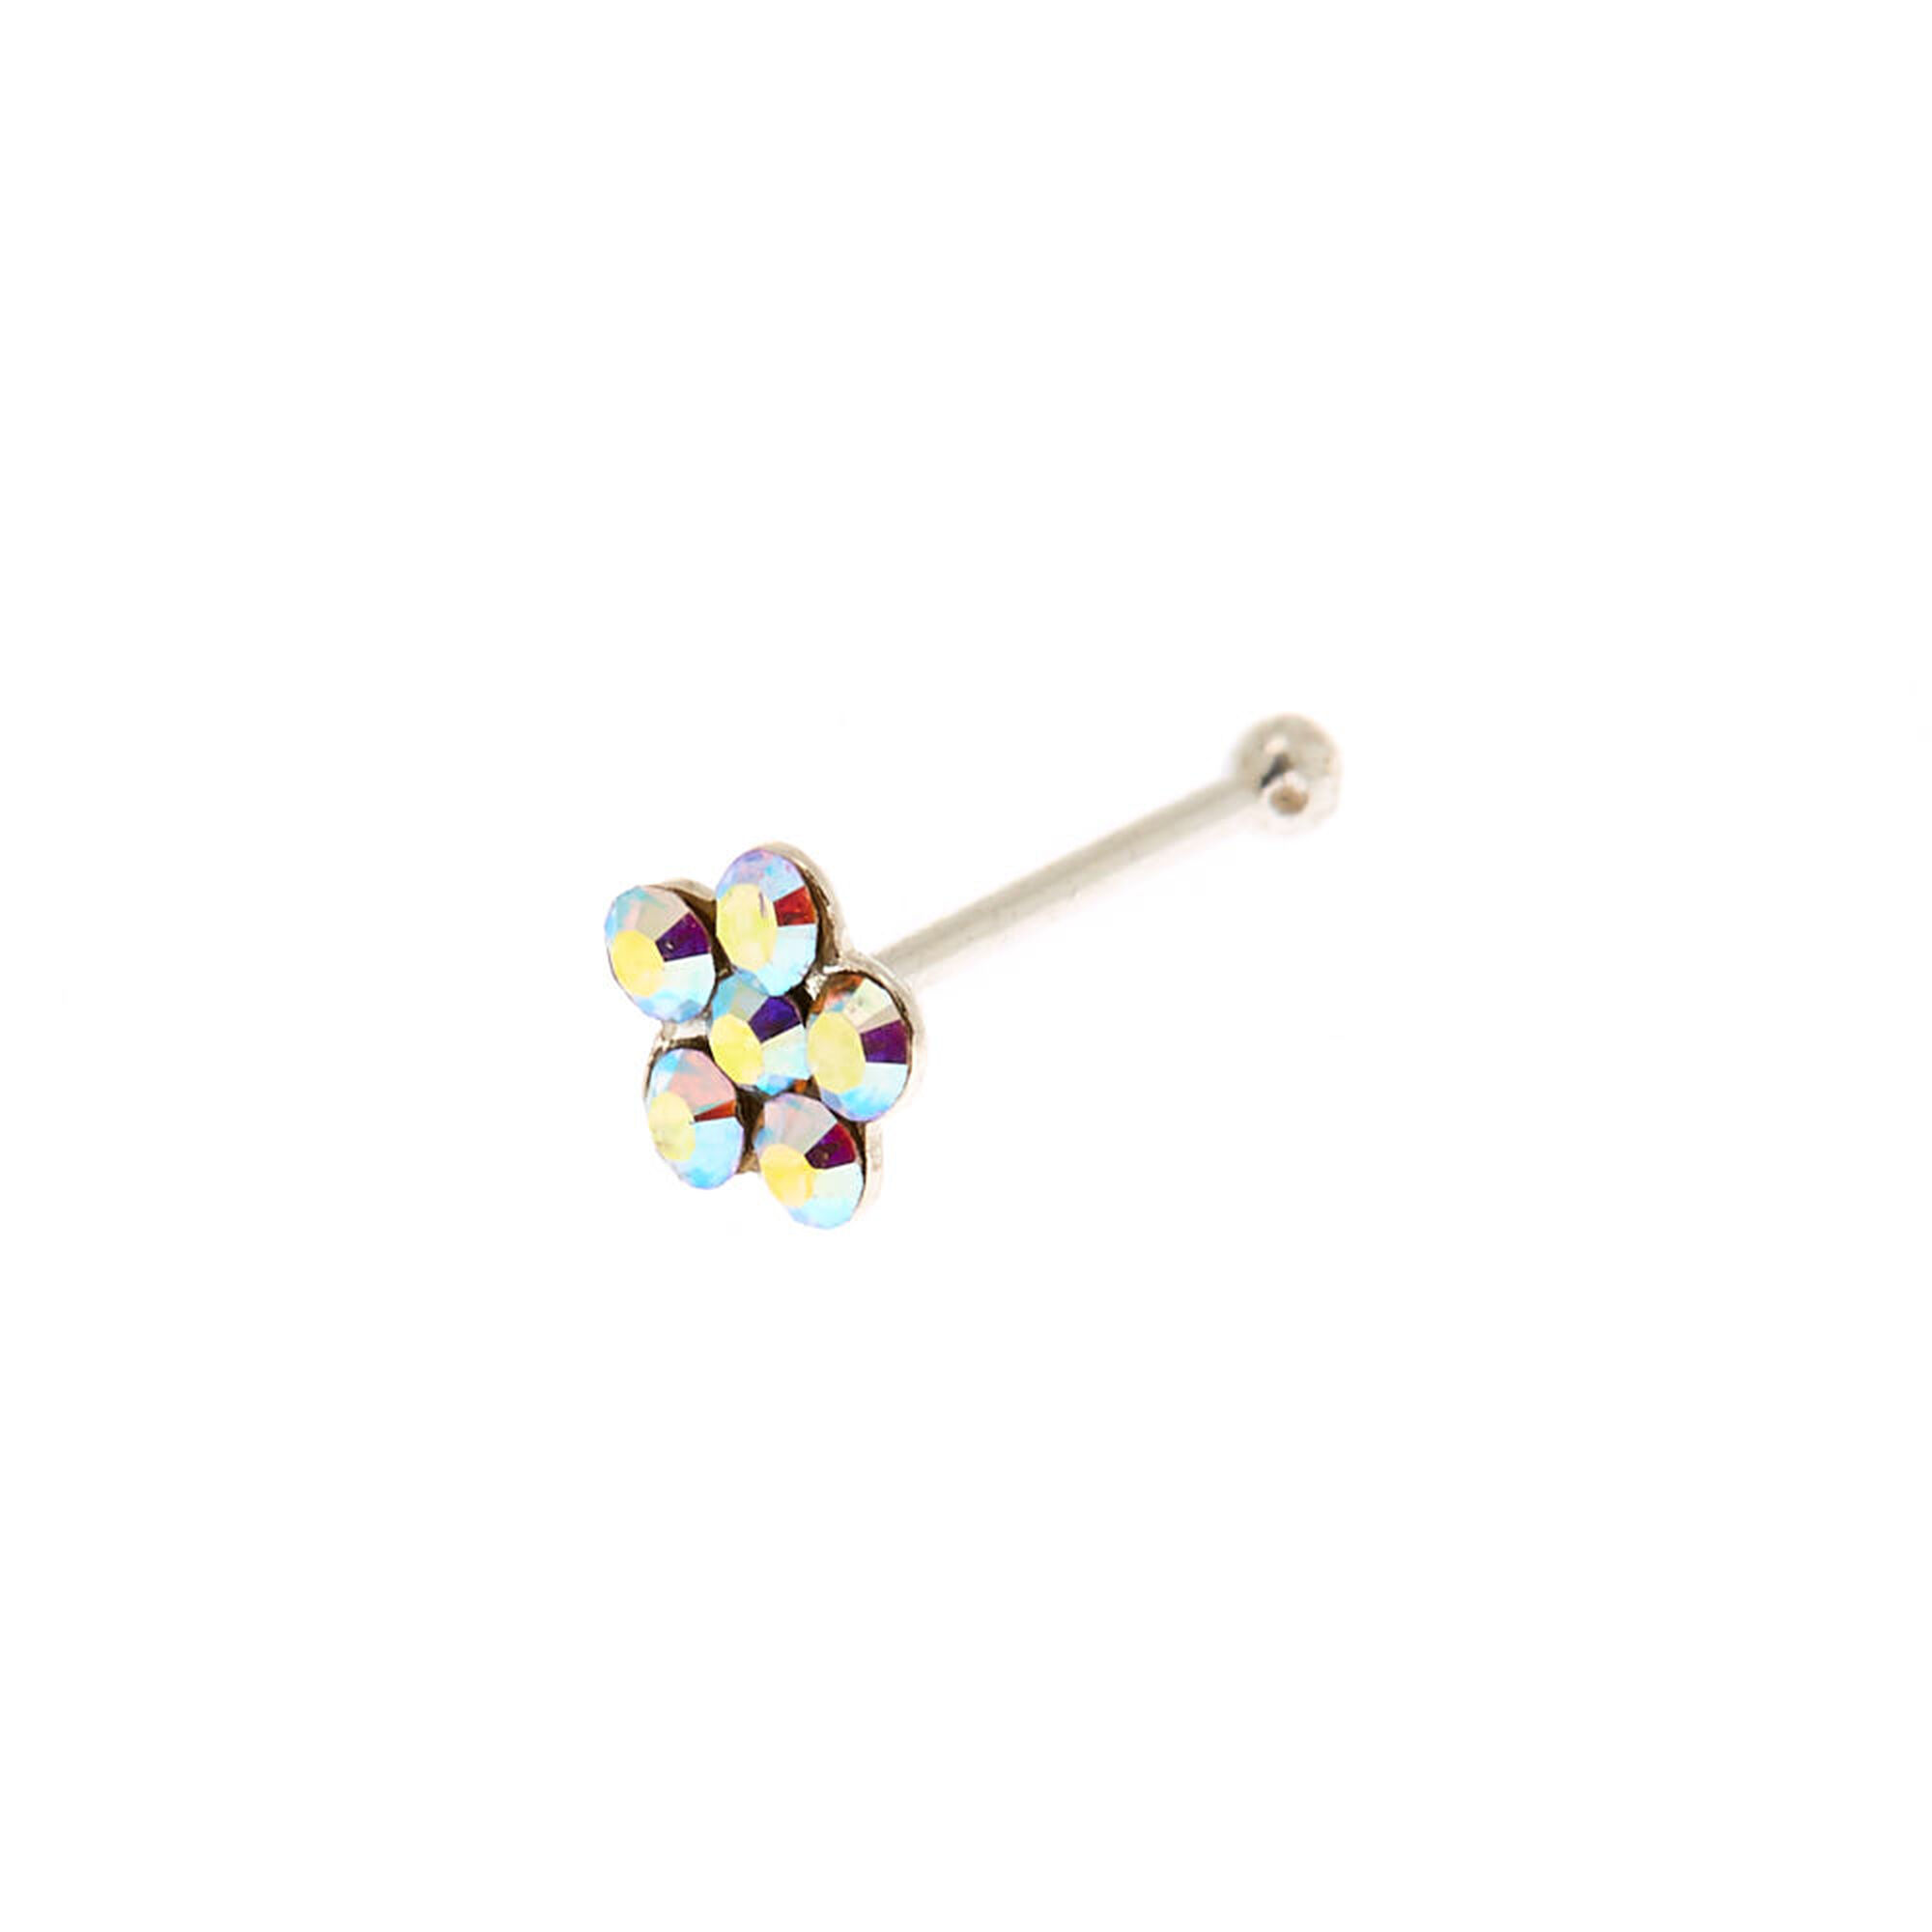 Sterling Silver 22g Iridescent Flower Stone Nose Stud Icing Us